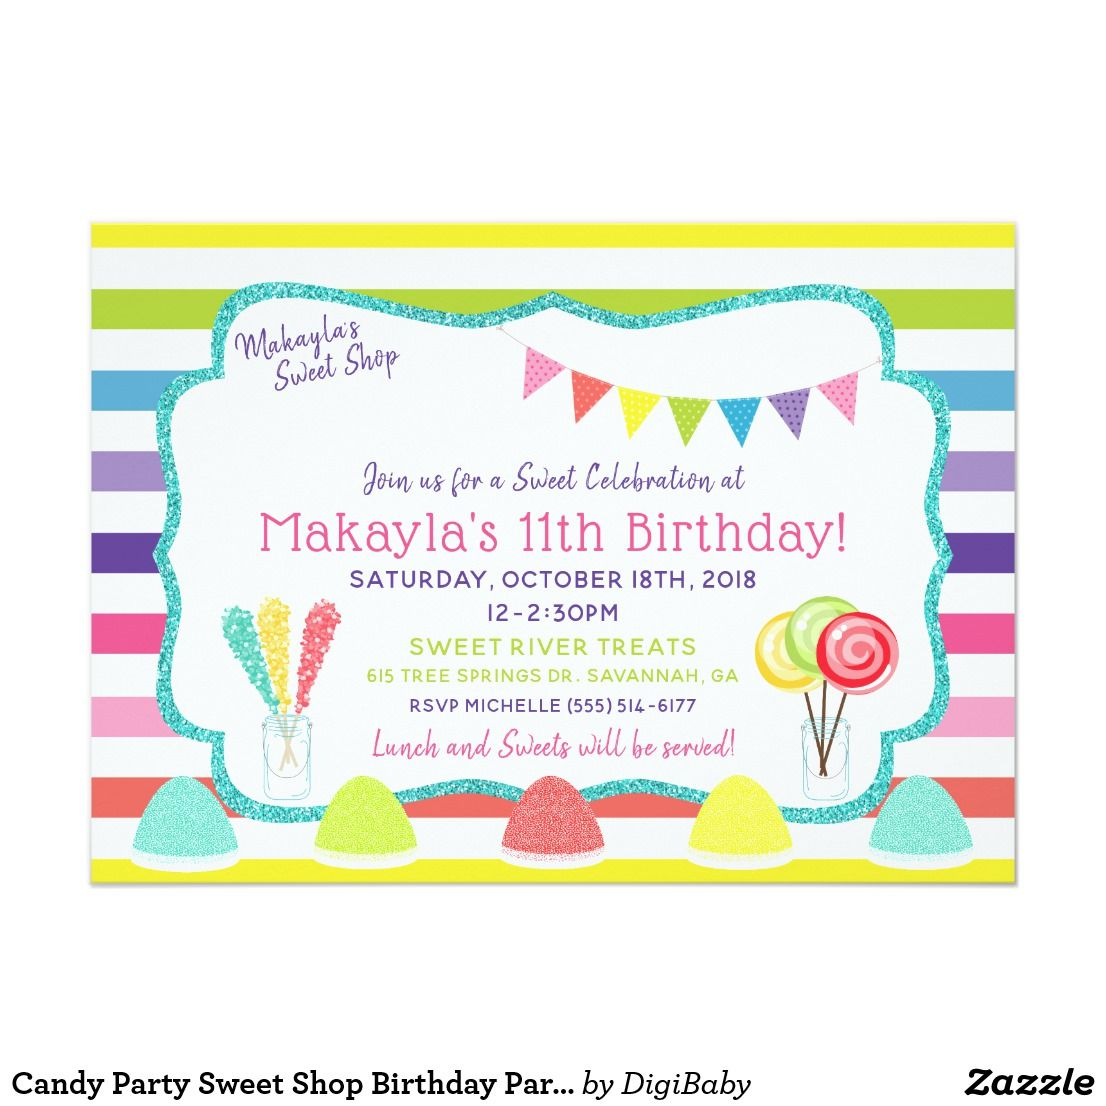 Candy Party Sweet Shop Birthday Party Invitation | Birthday Party ...